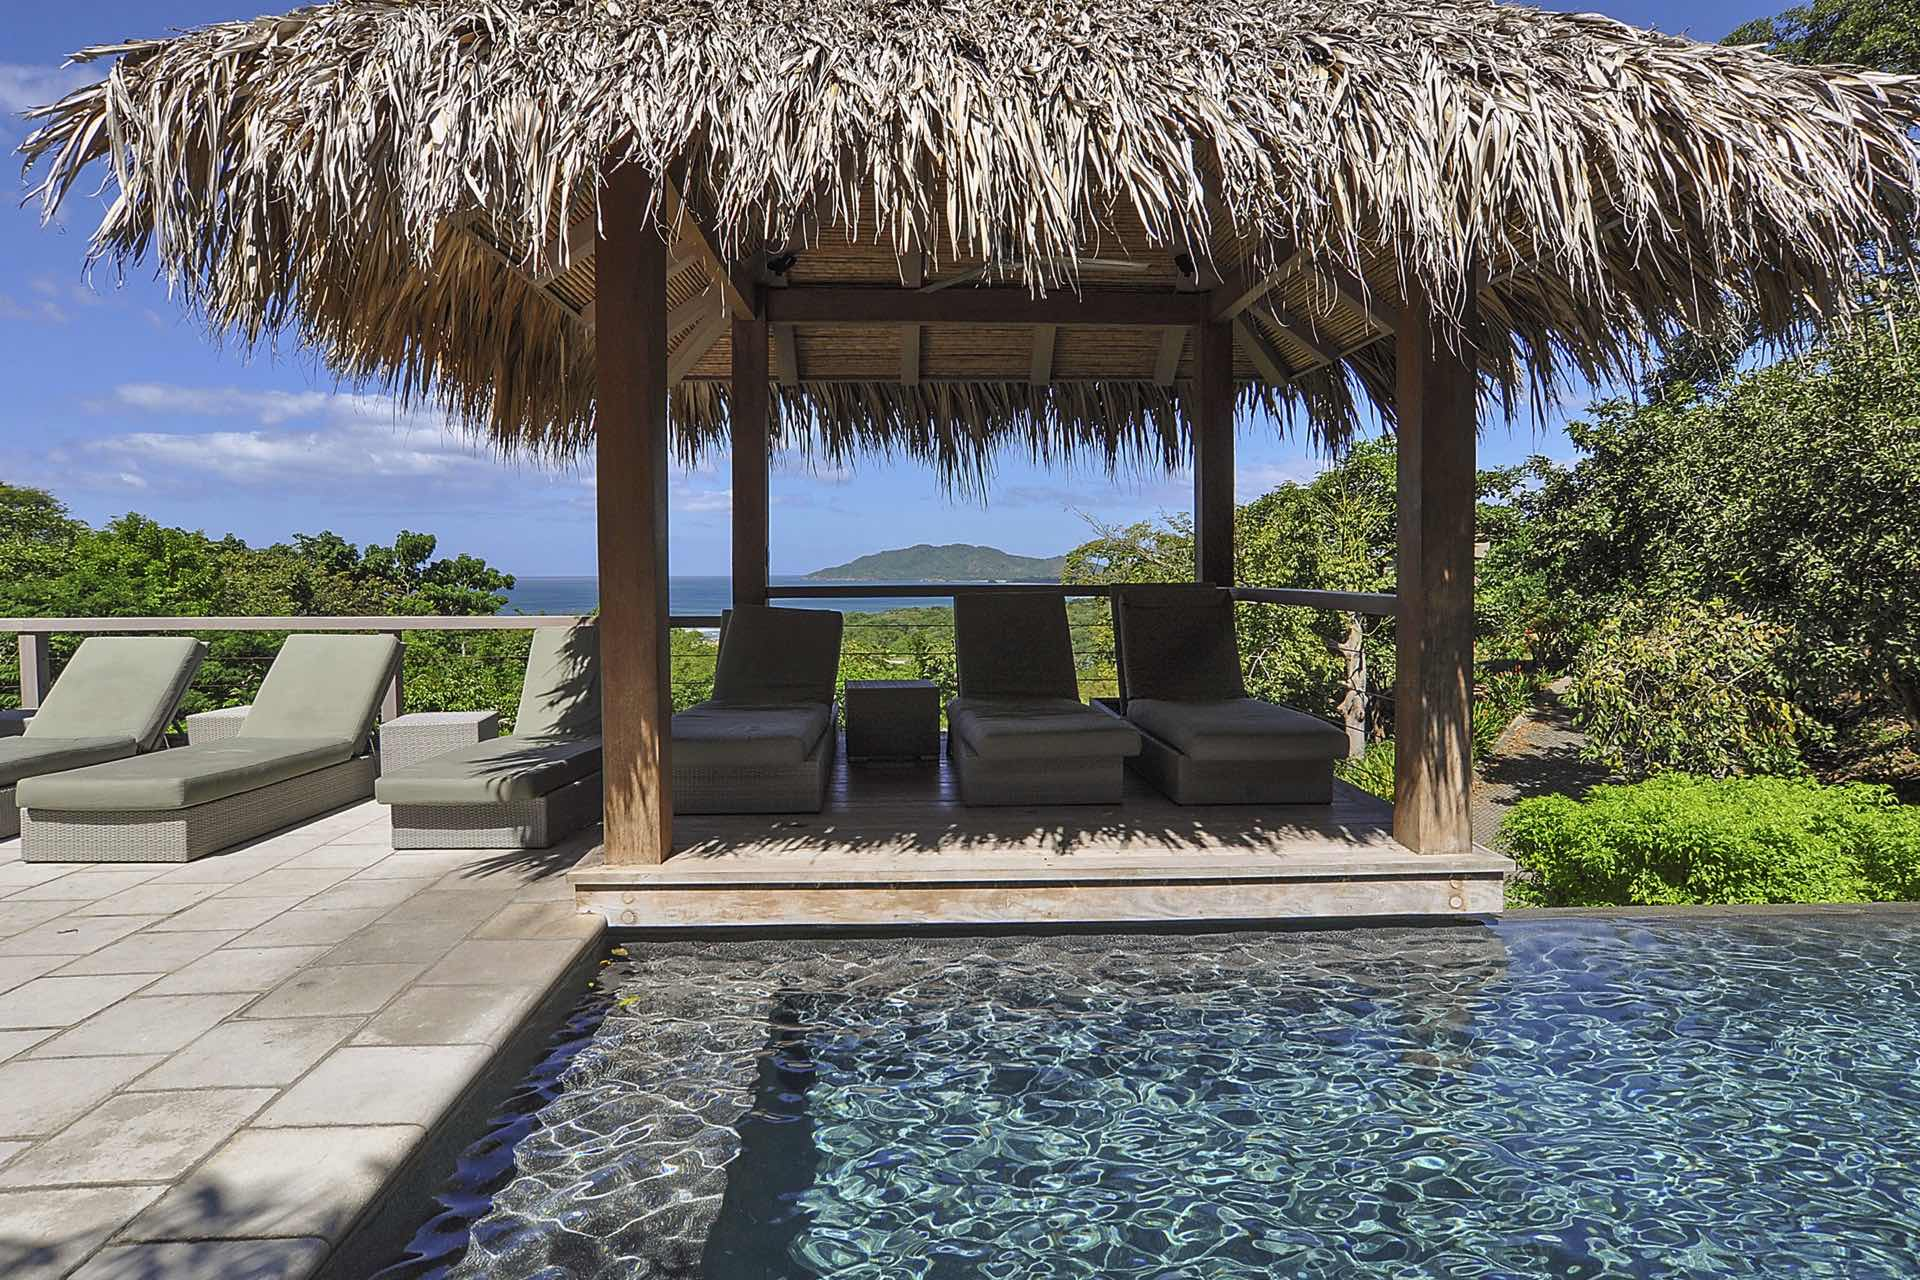 Small palapa next to pool